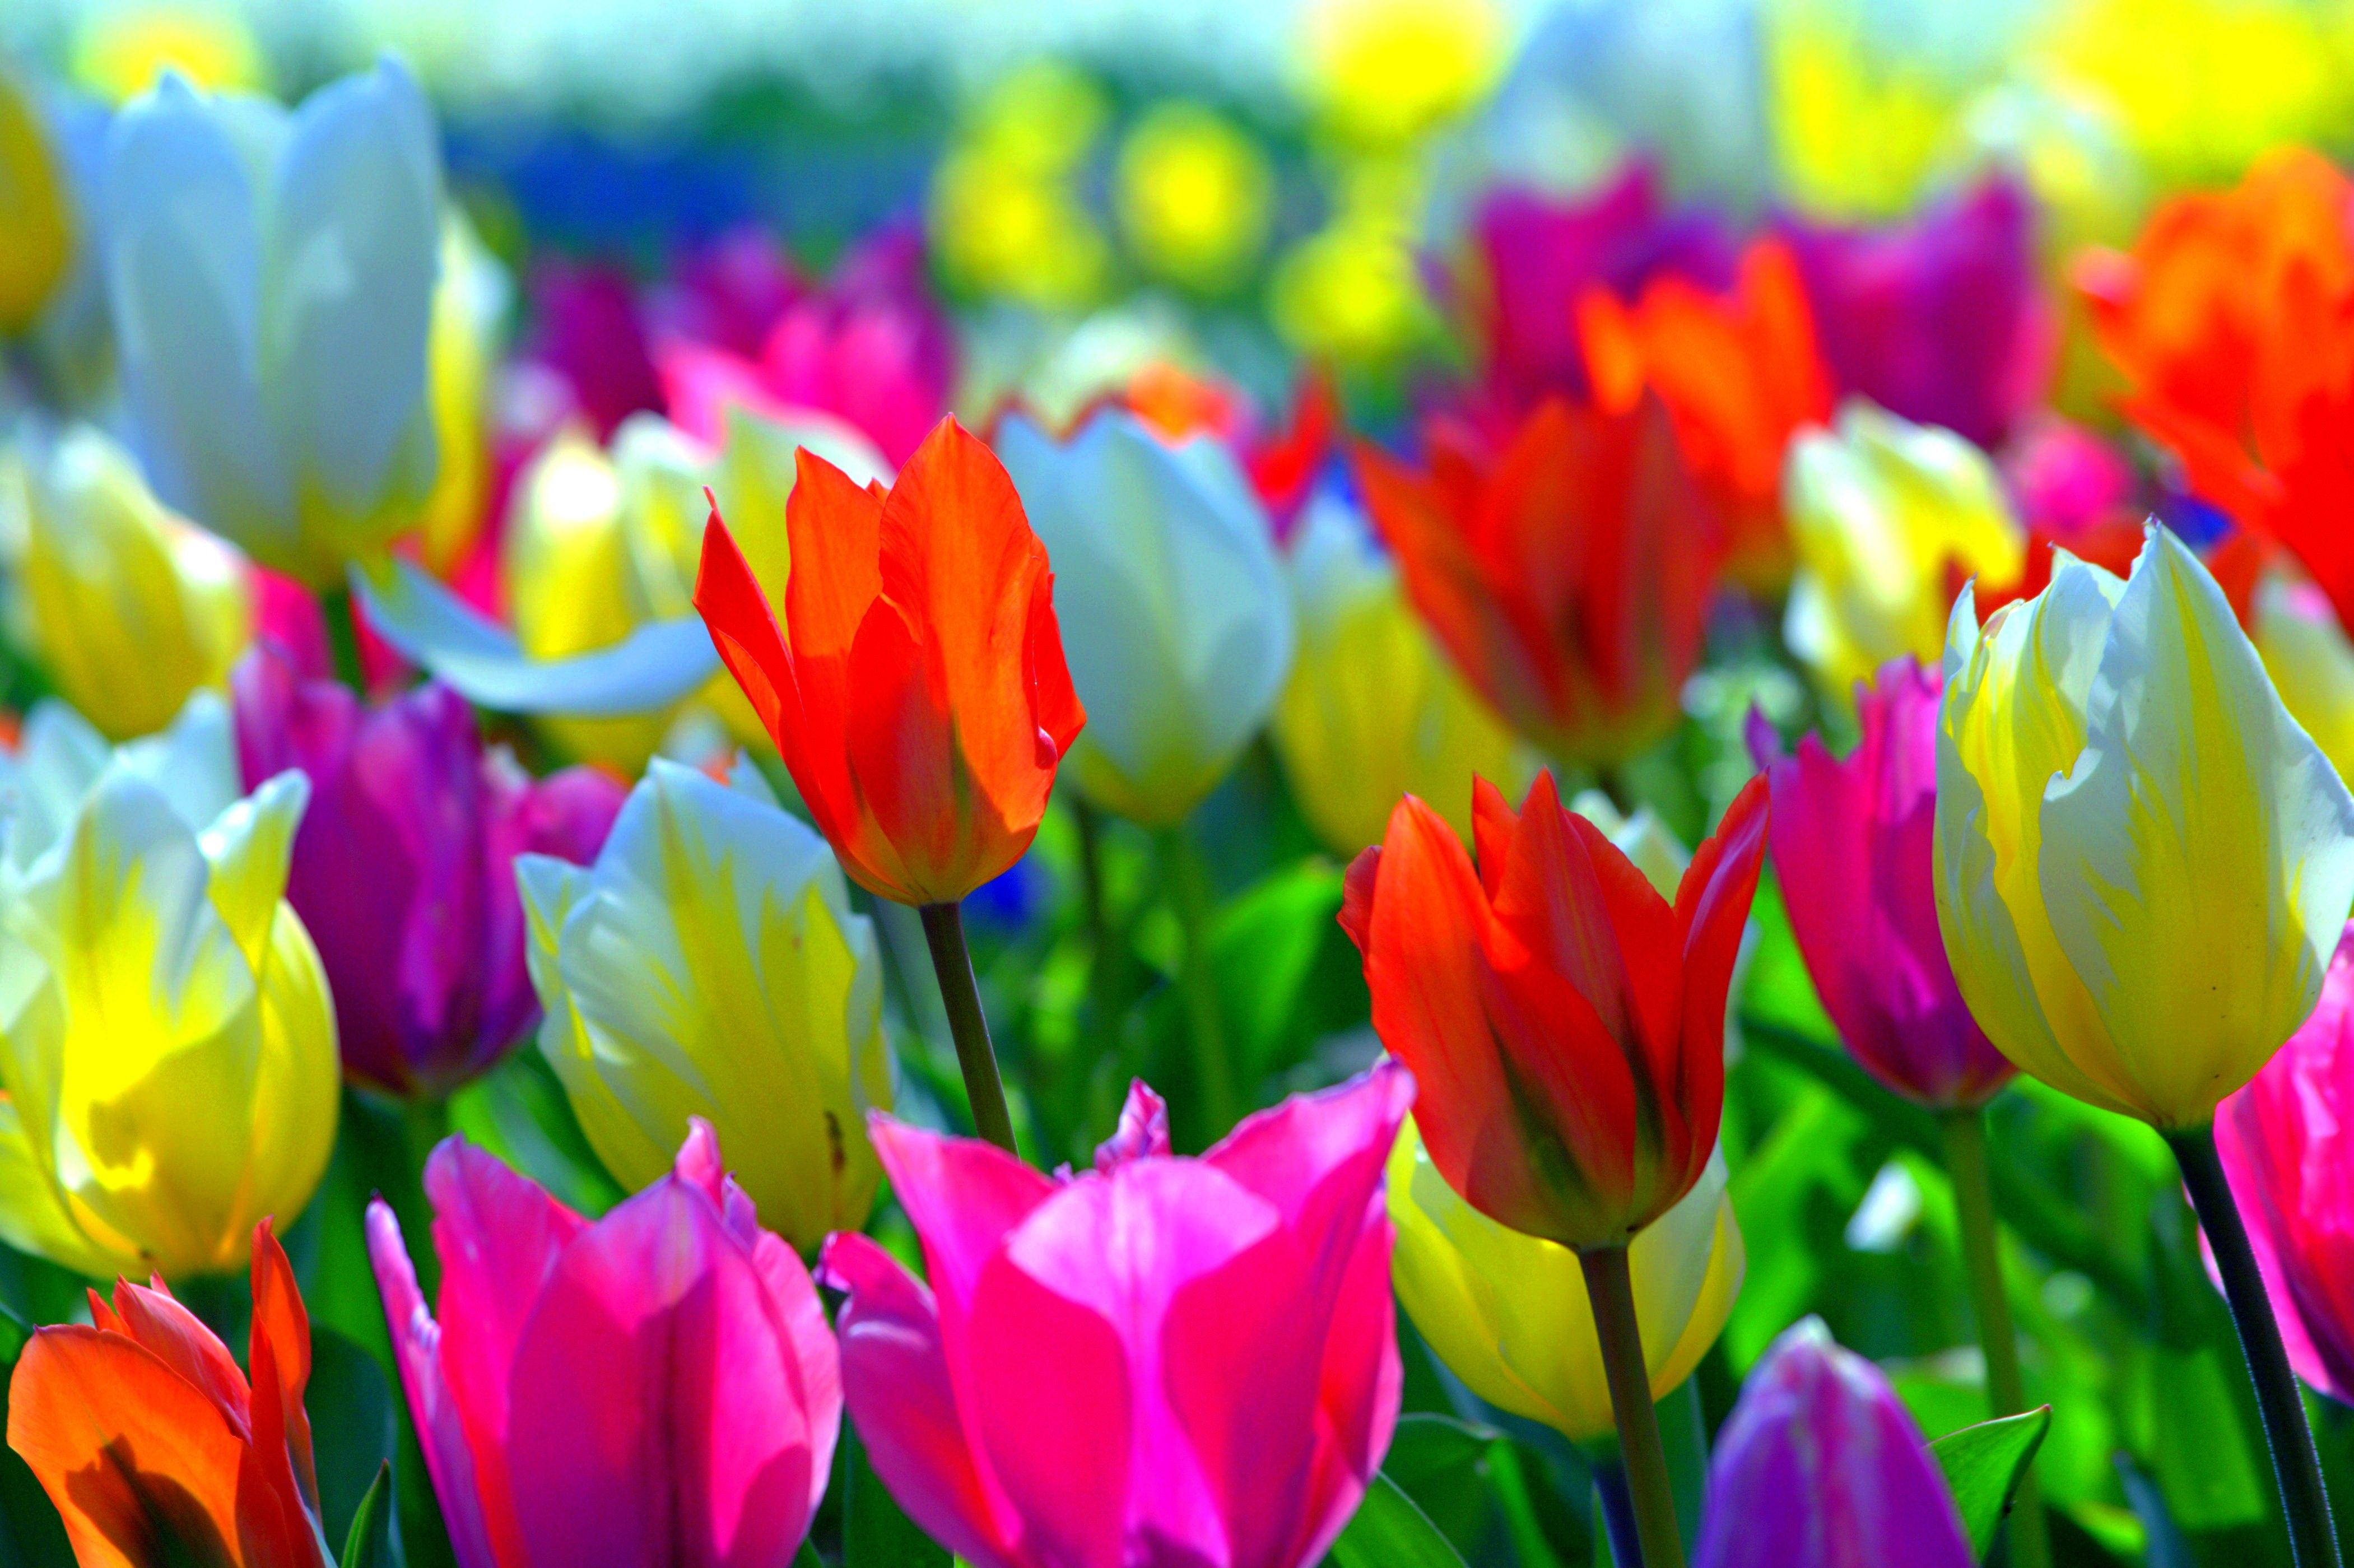 Colorful spring flowers colors tulips nature desktop backgrounds colorful spring flowers colors tulips nature desktop backgrounds mightylinksfo